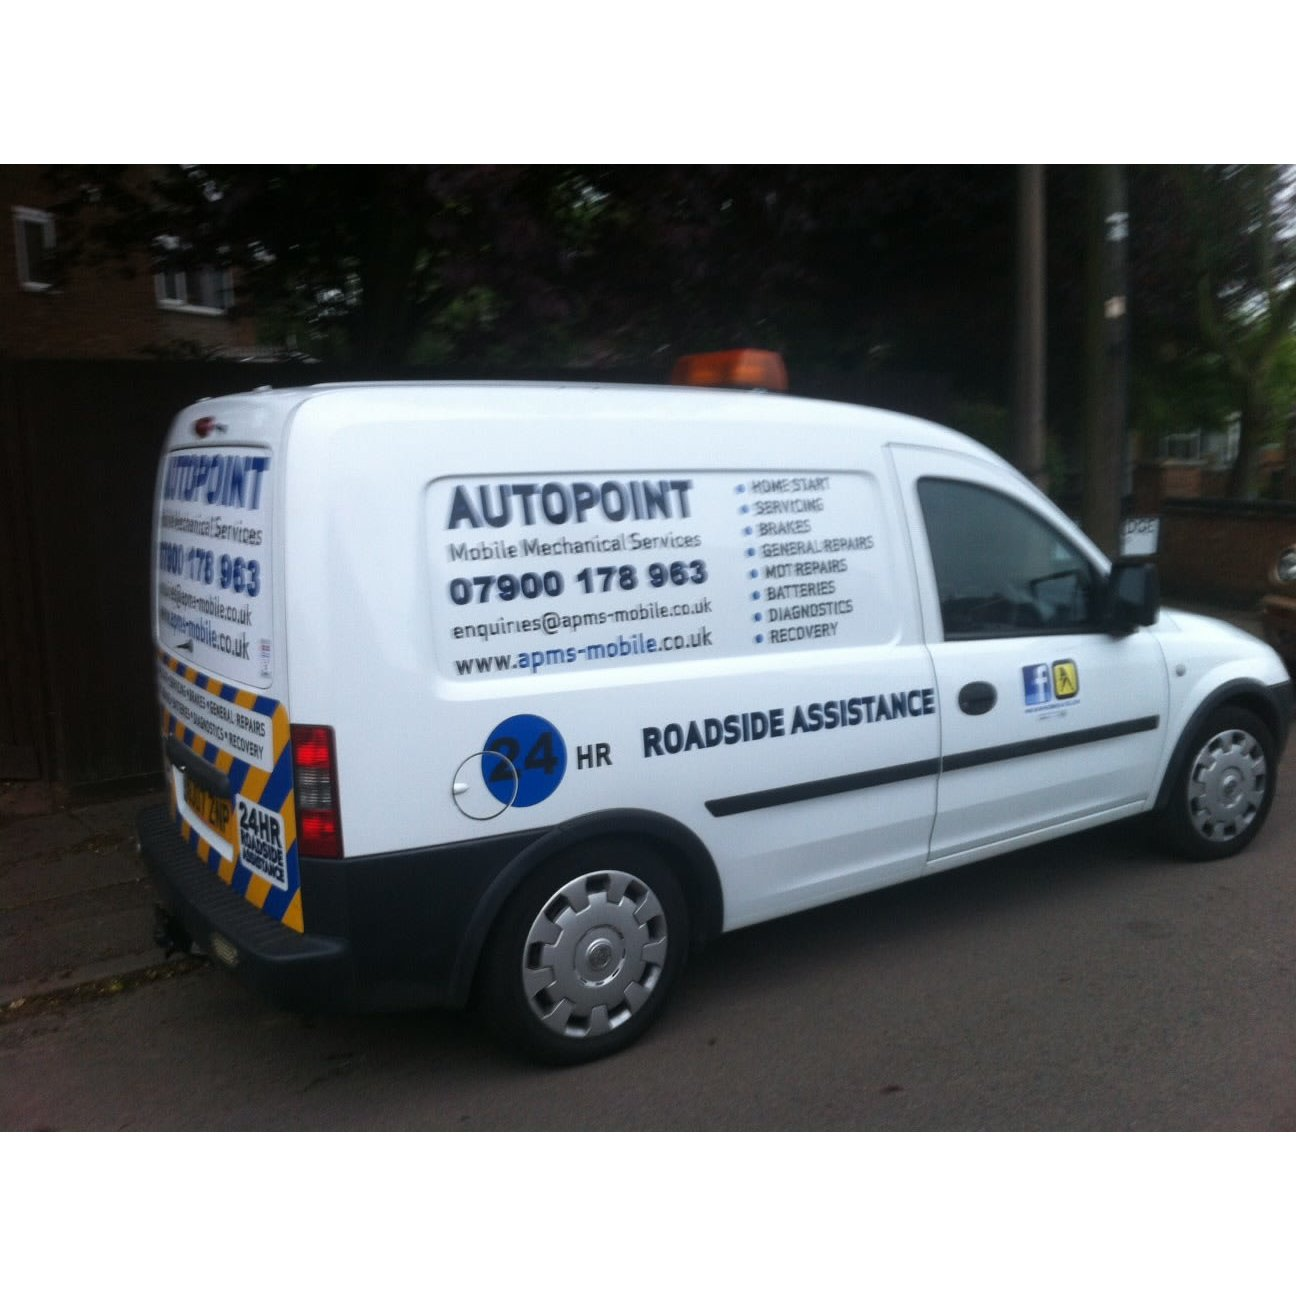 Autopoint Mobile Mechanical Service